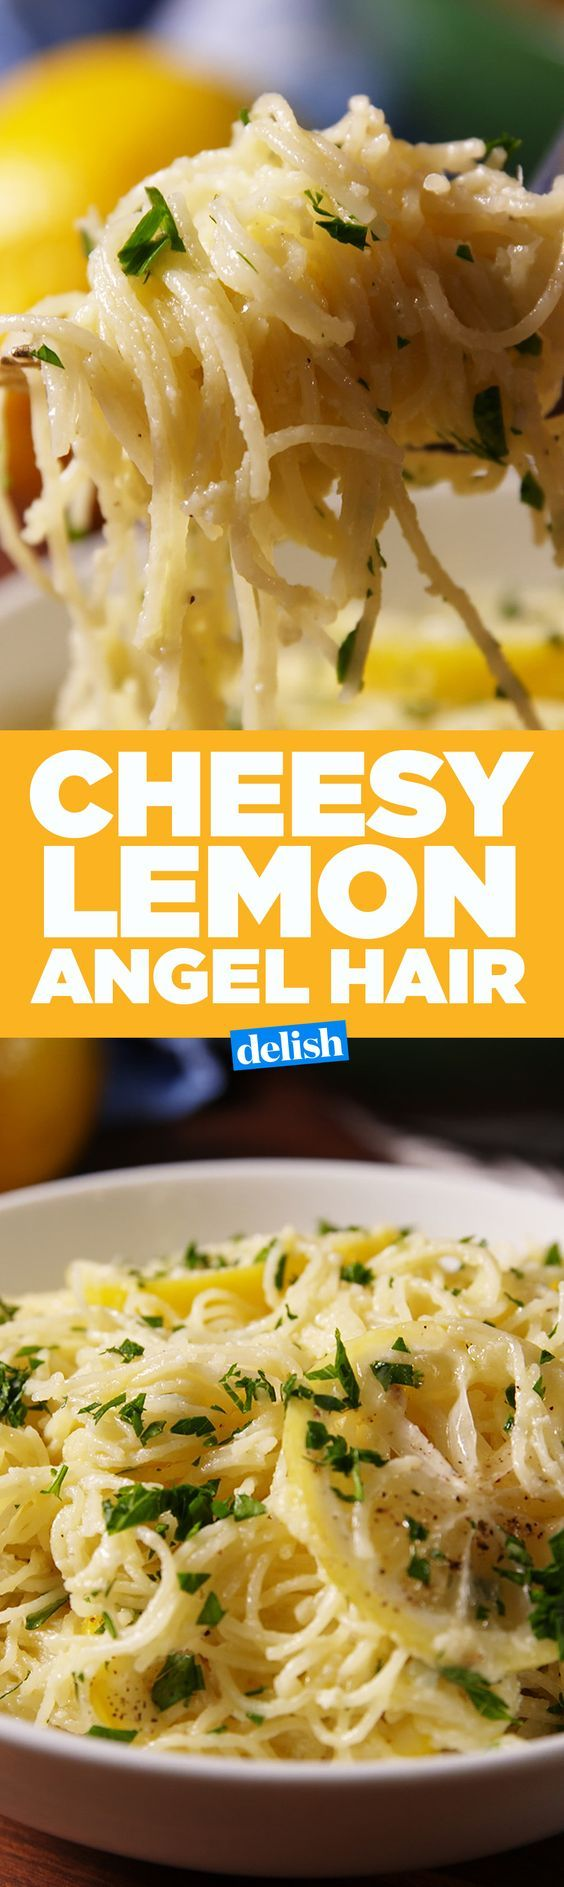 This Cheesy Lemon Angel Hair is the fanciest comfort food we've ever had. Get the recipe on Delish.com.